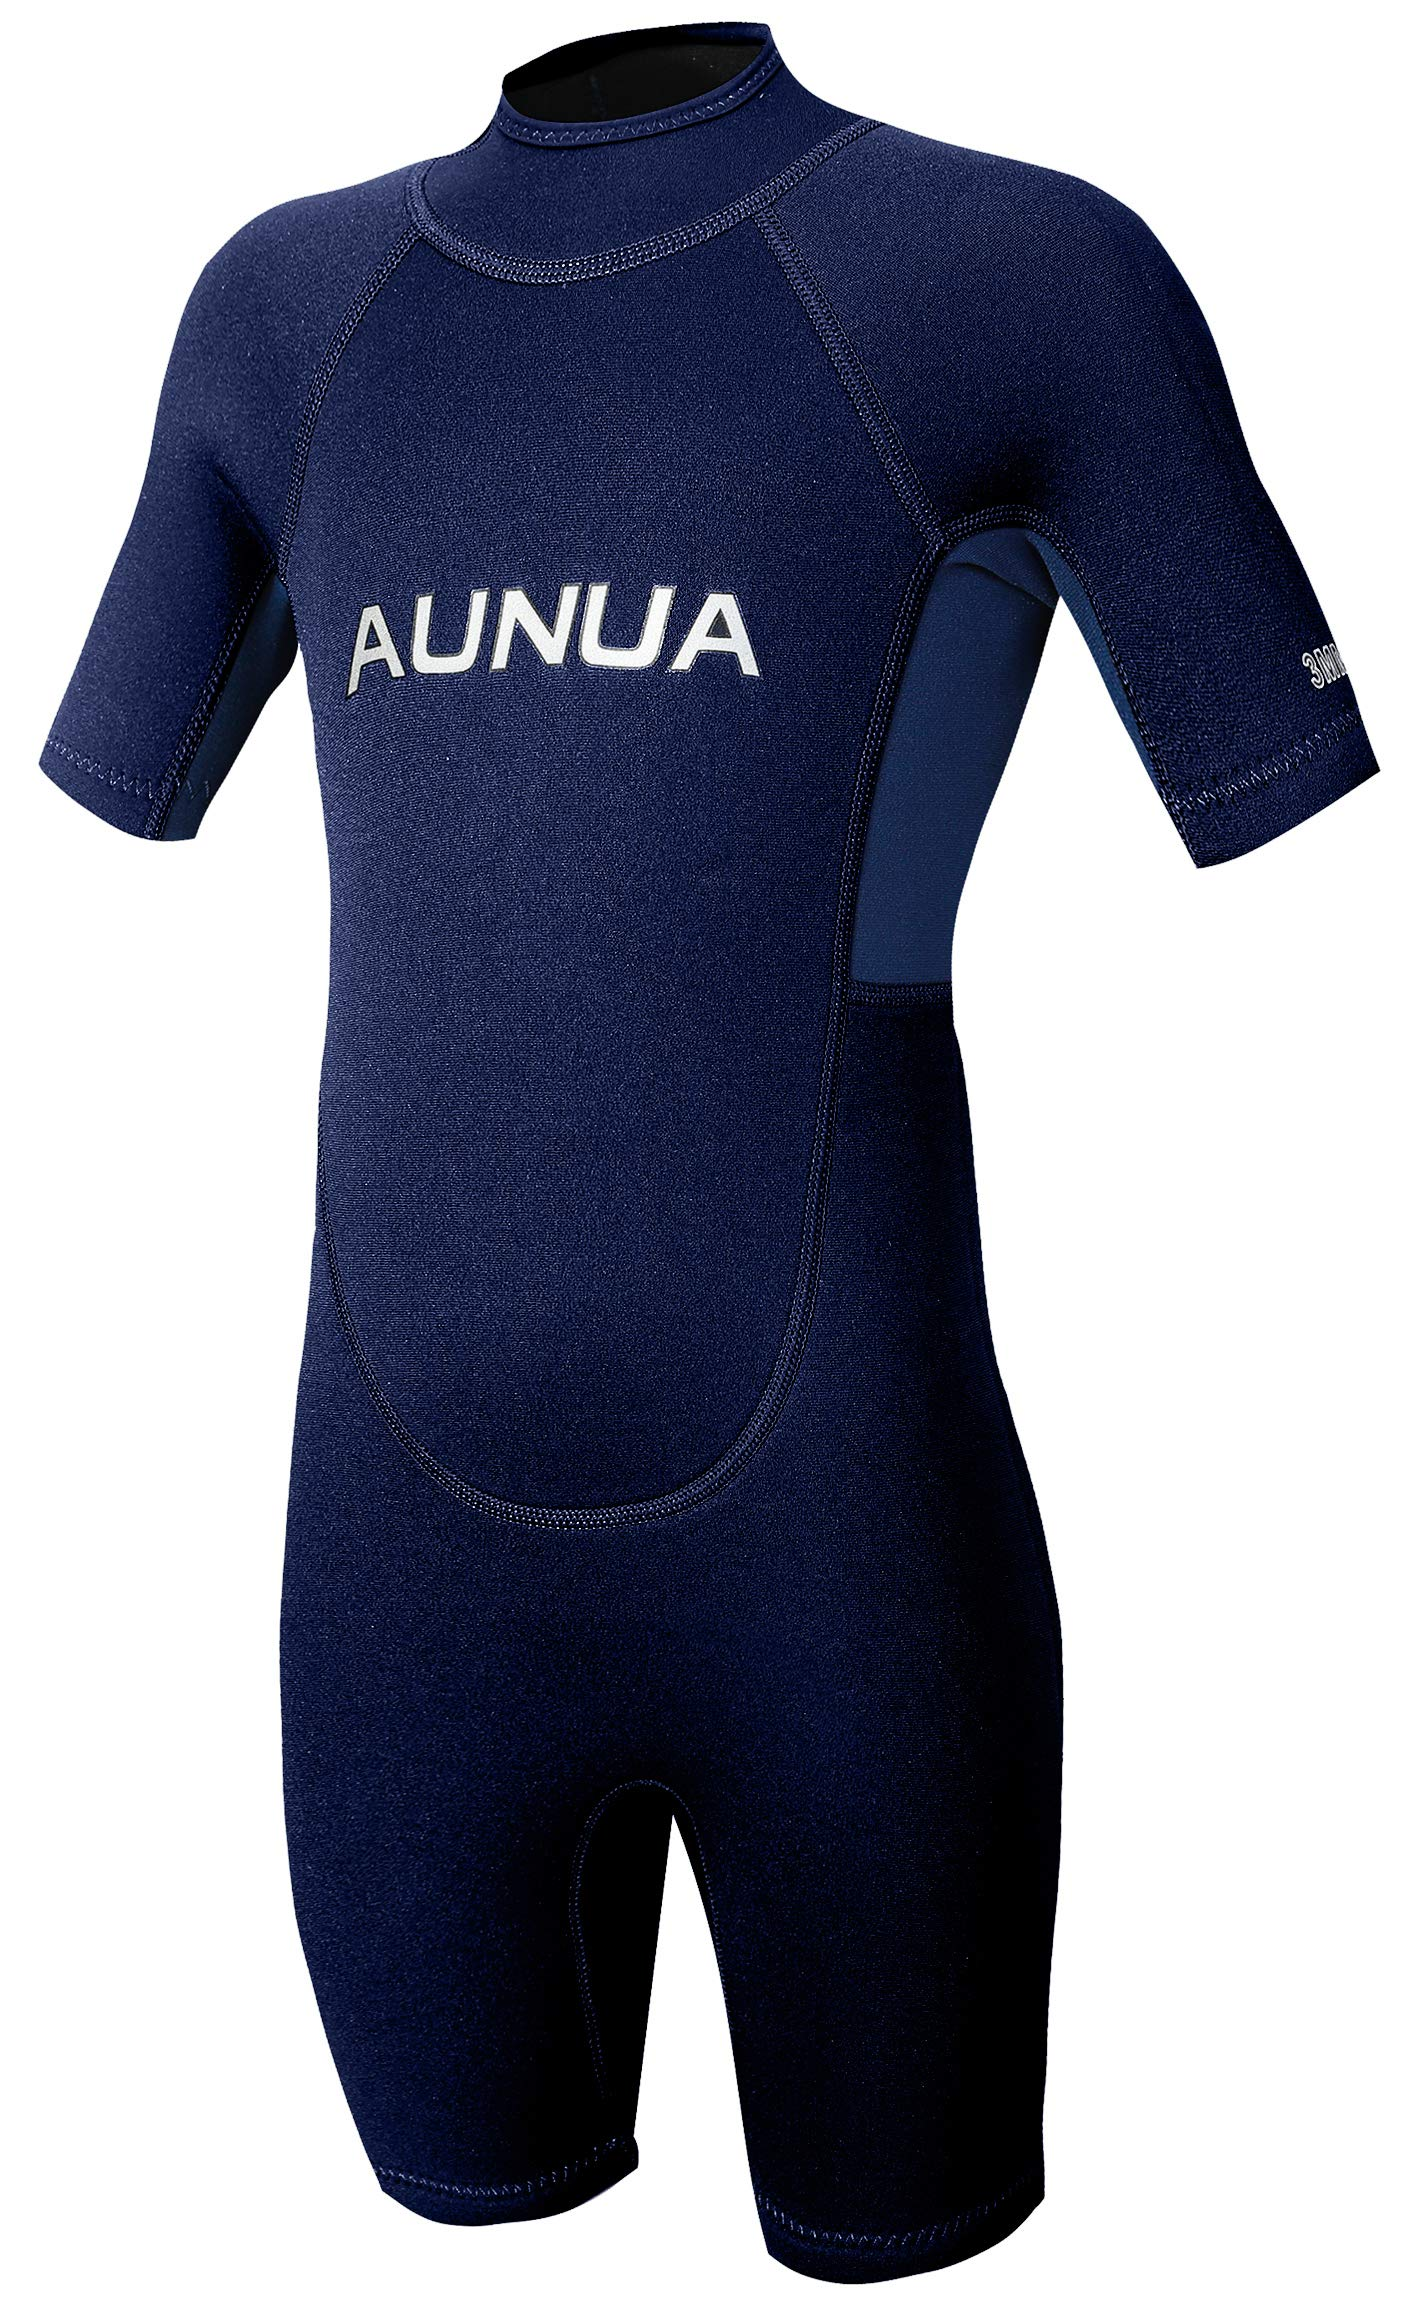 Aunua Children's 3mm Youth Swimming Suit Shorty Wetsuits Neoprene for Kids Keep Warm(7035 NavyBlue 8) by Aunua